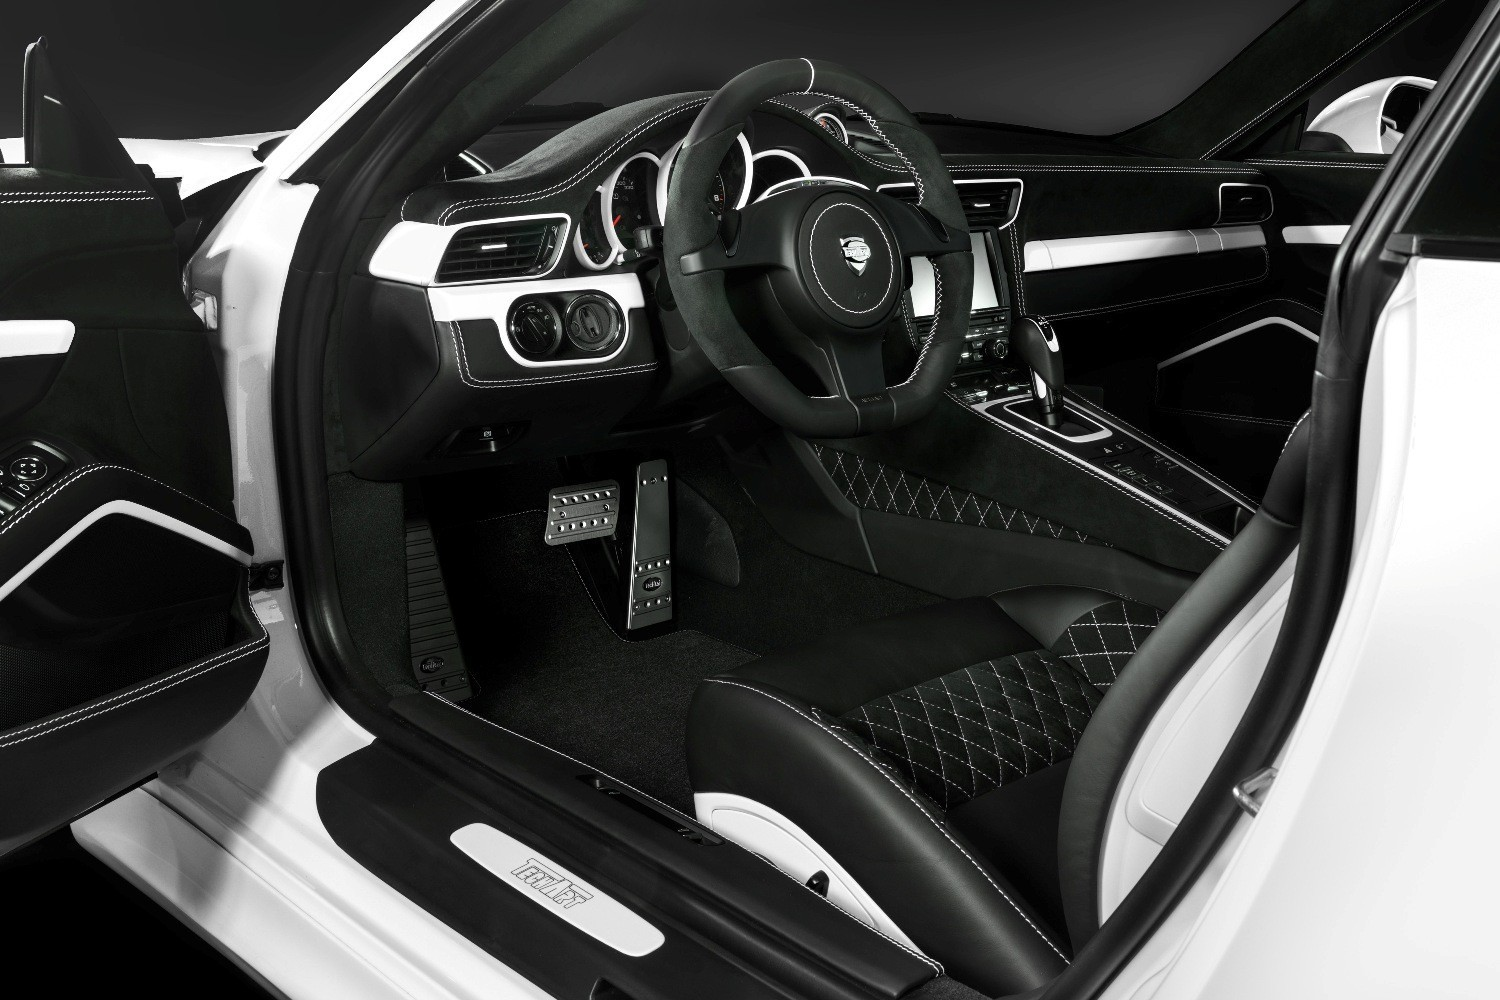 TECHART_for_Porsche_911_C4S_interior1